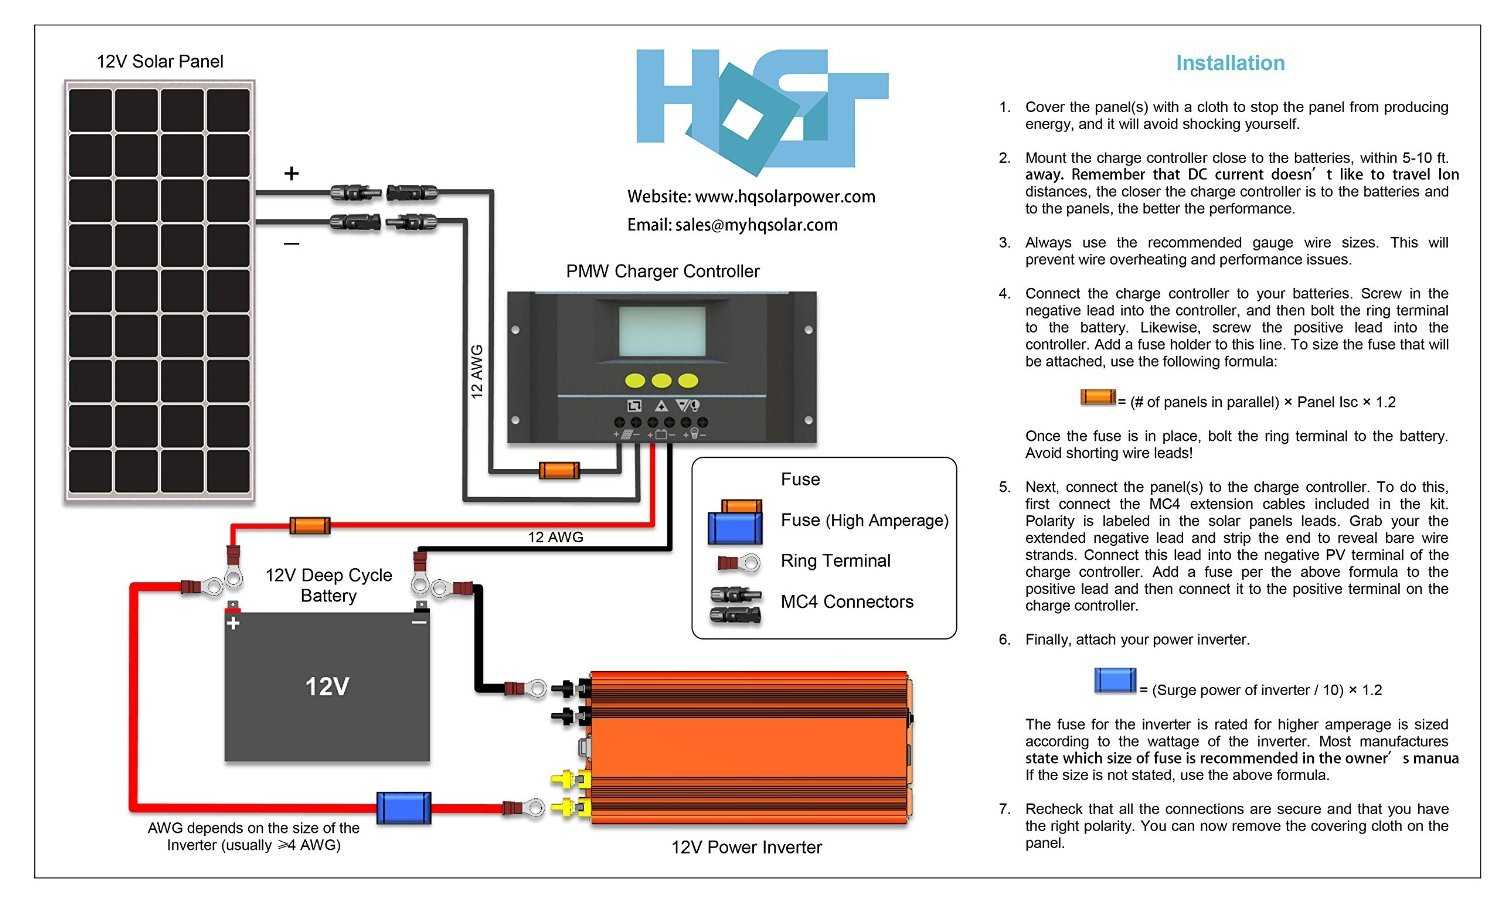 12 Volt Solar Panel Wiring Diagram Likewise Generator Size Basic U2022 Rh Rnetcomputer Co